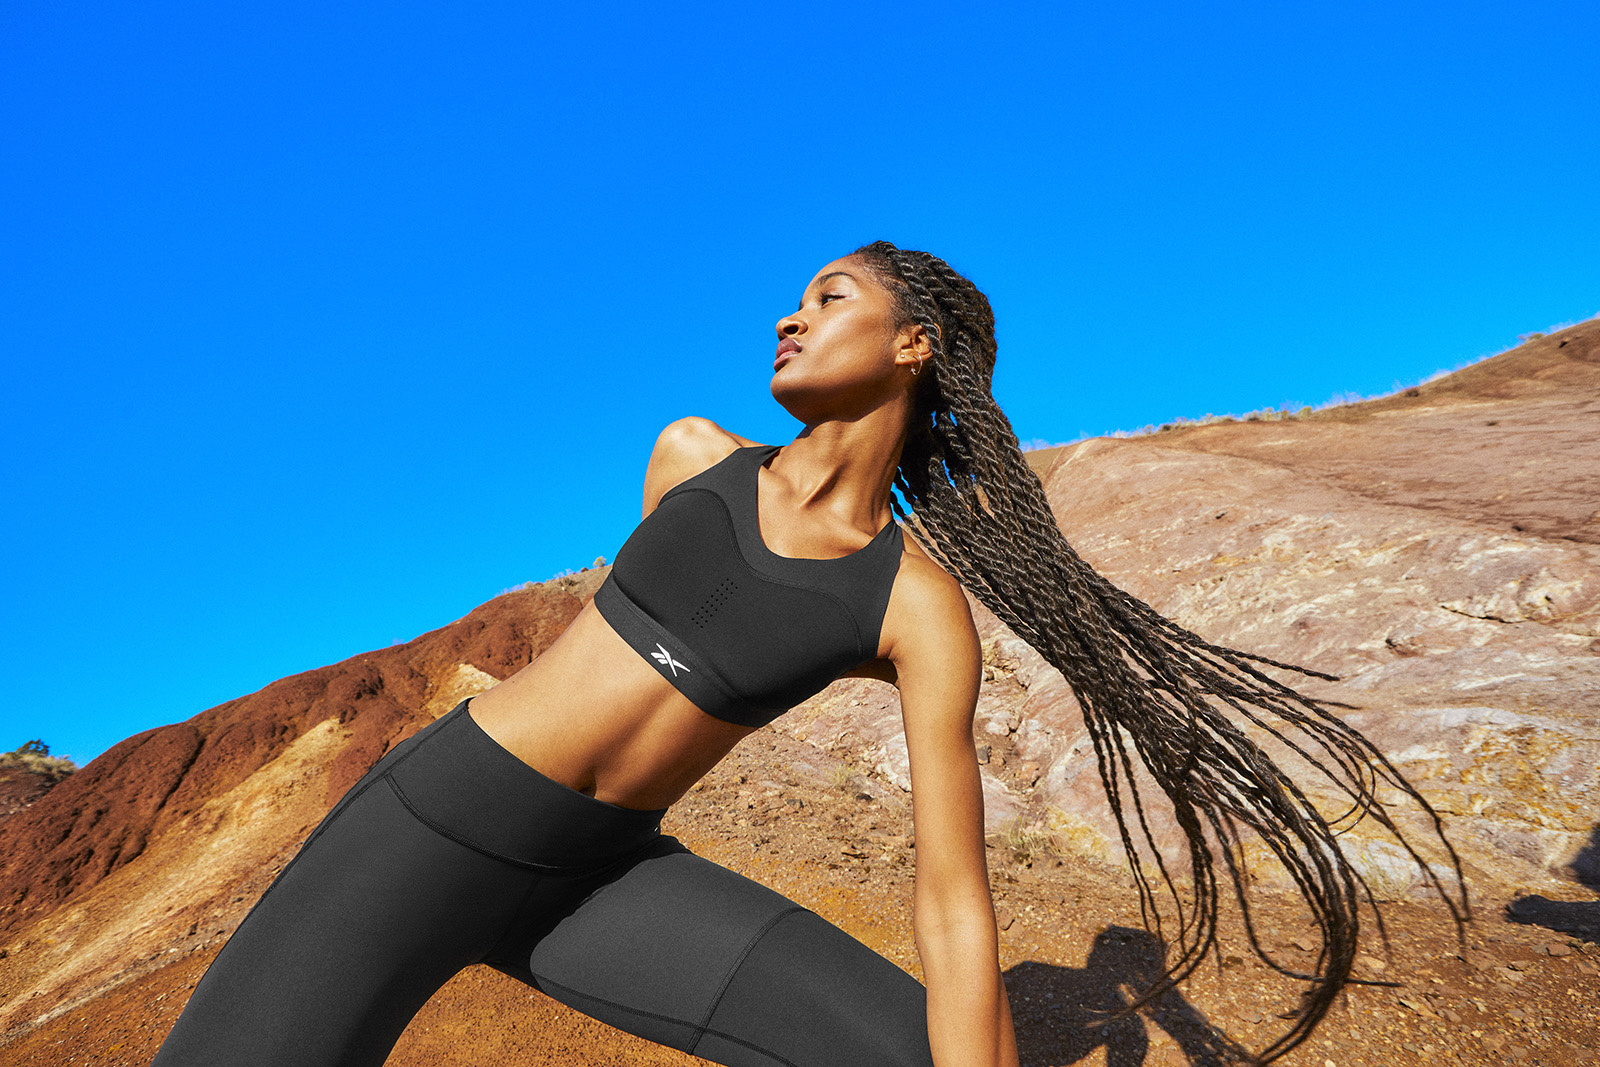 Woman wearing black bra and tights stretches in the same red earth, blue sky location.